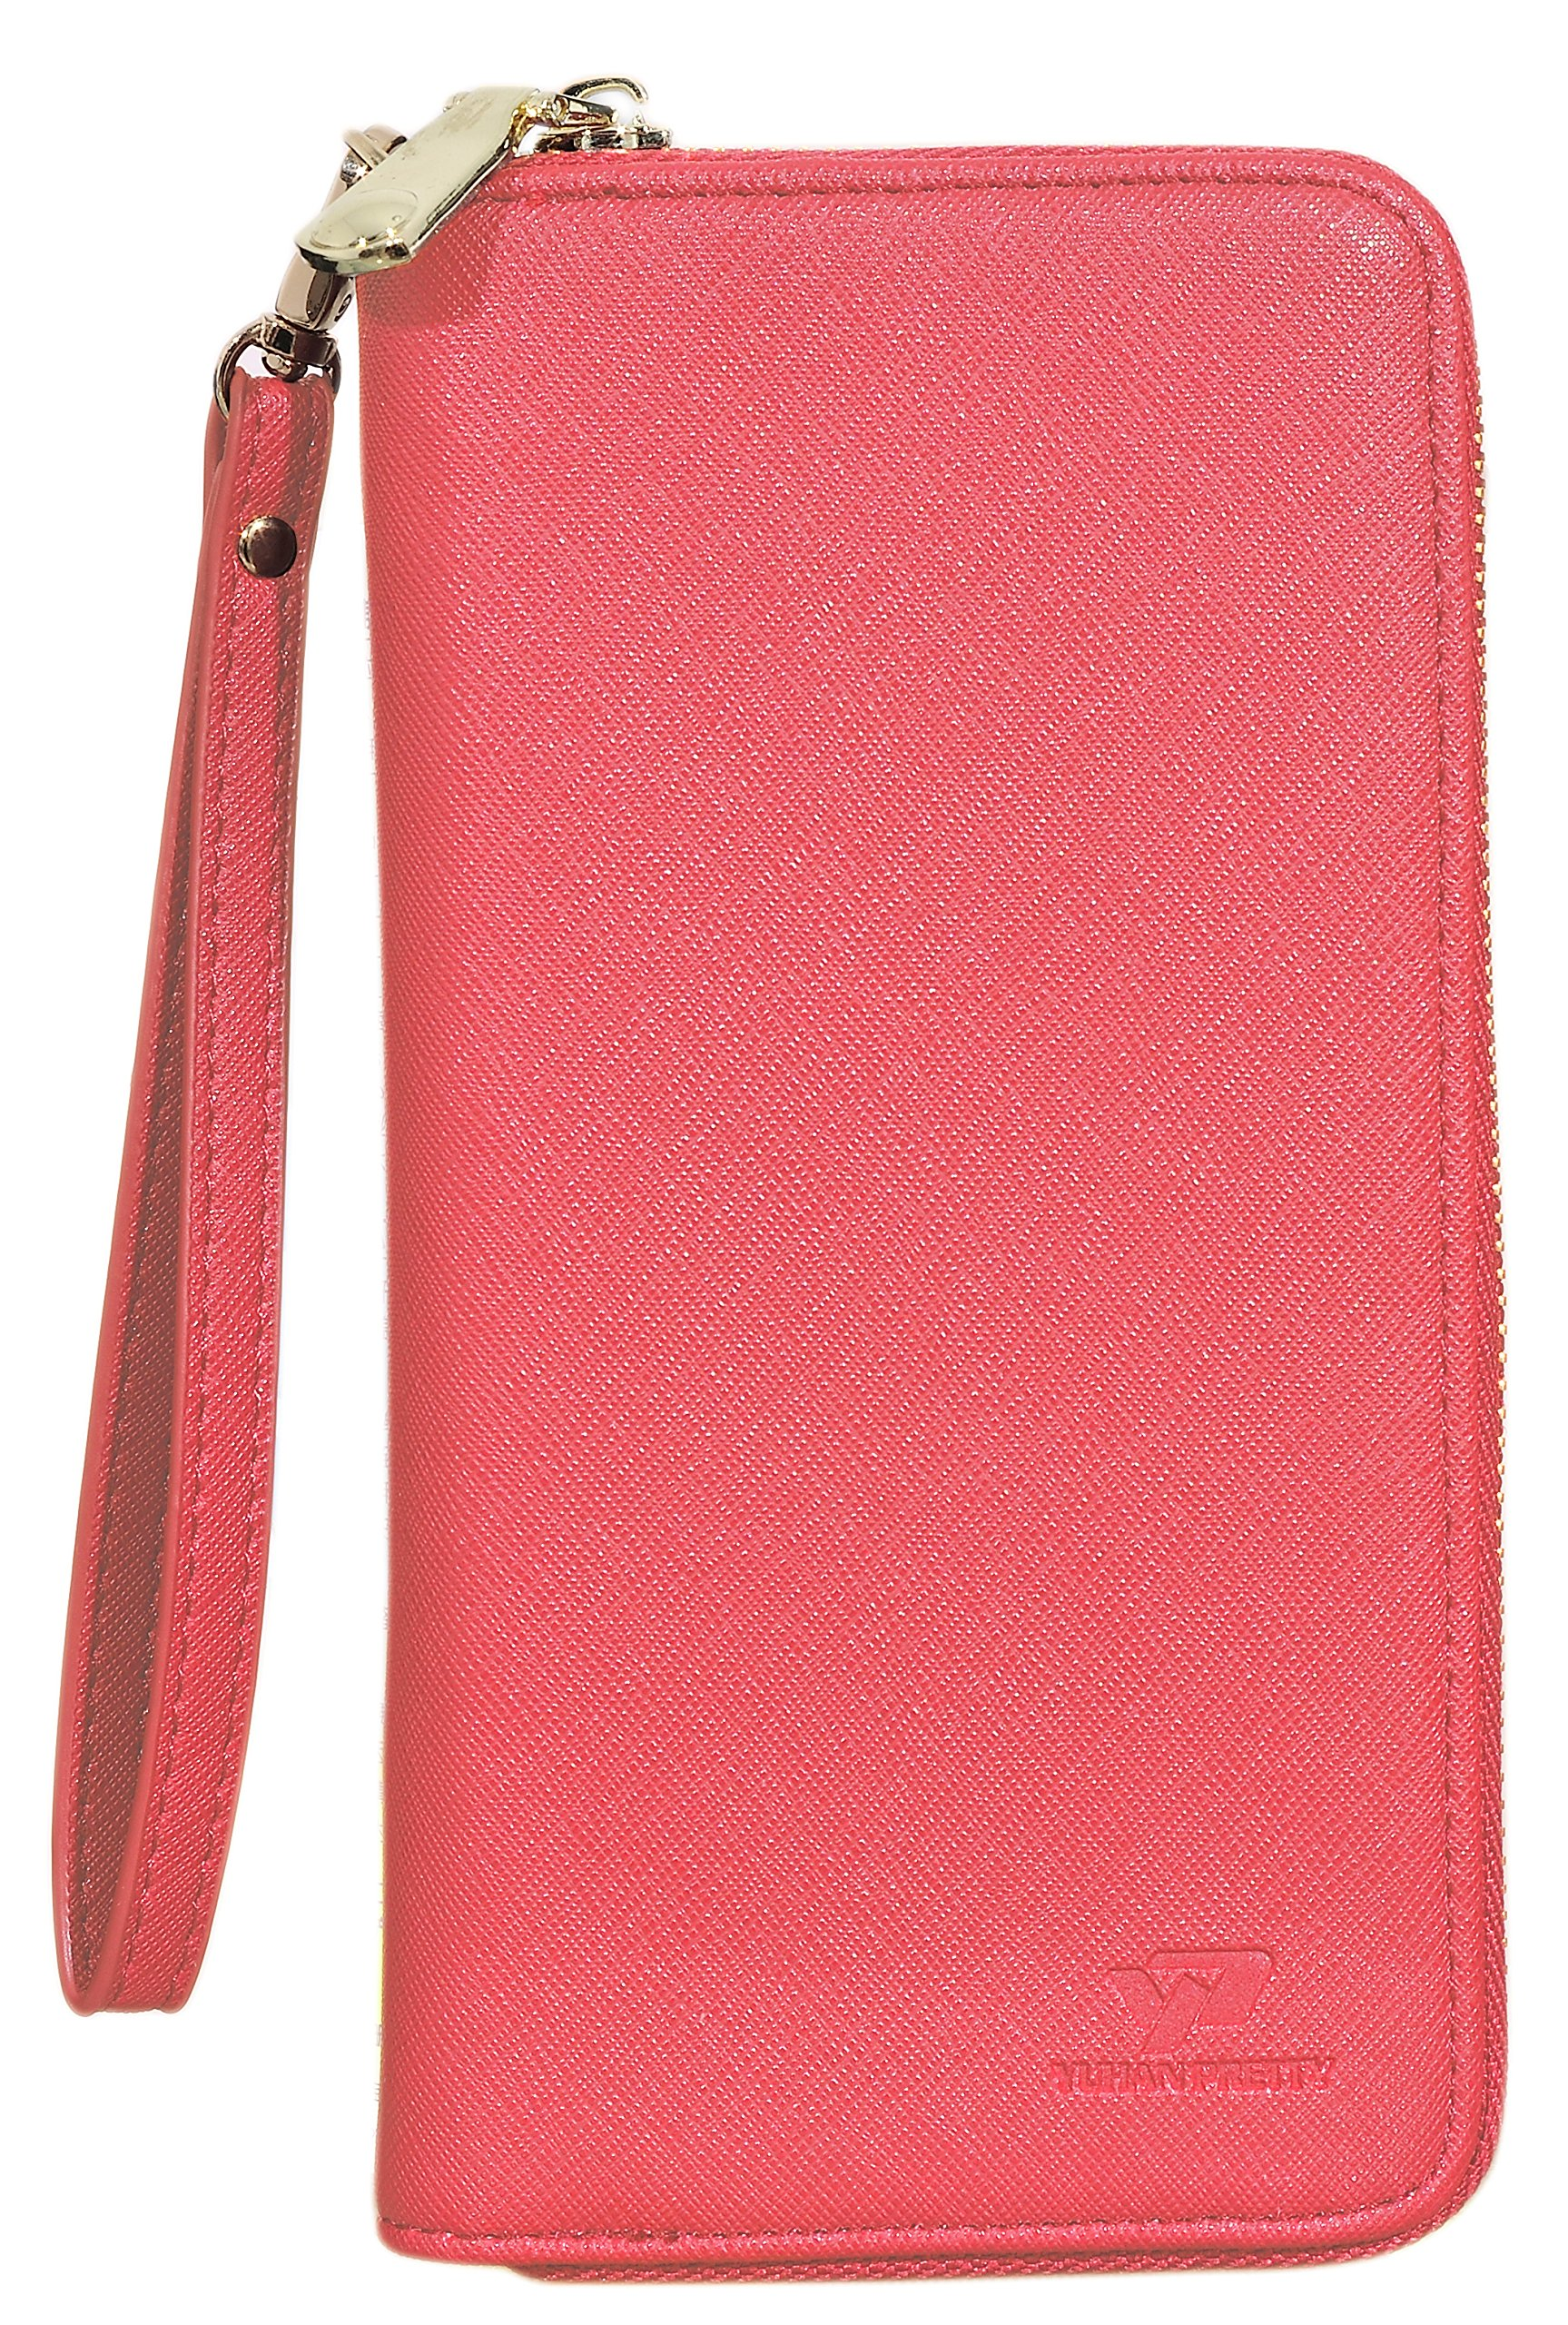 Womens Leather Wallet Clutch Long Zipper Wallets with Wrist Strap Card Holder (Red - New) by Yuhan Pretty (Image #2)